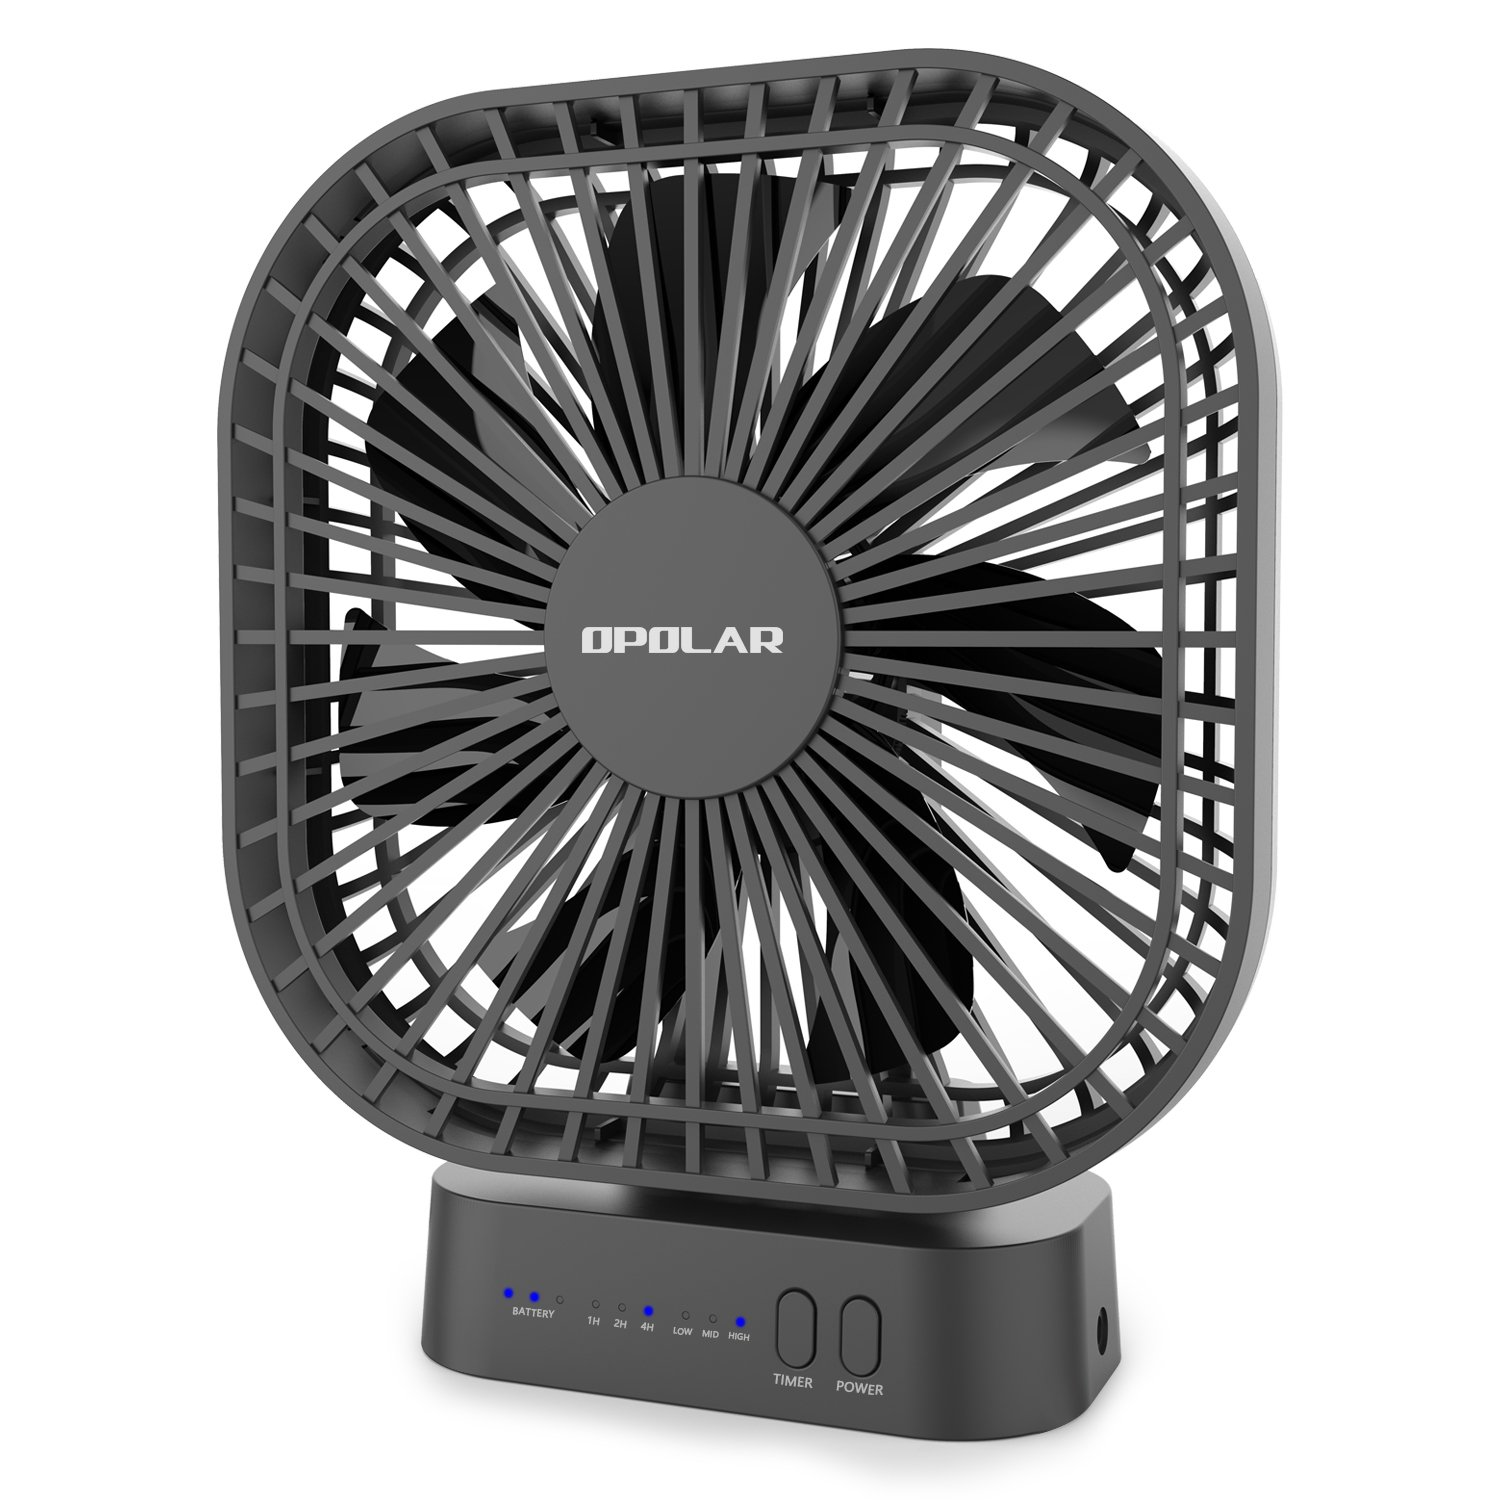 OPOLAR 6700mAh Battery Operated Fan, Personal Table Mini USB Fan with Timer, Strong Wind, 3 Speeds, 7 Blades, Powered by USB or Rechargeable Battery, Super Quiet, for Office, Camping, Outdoor